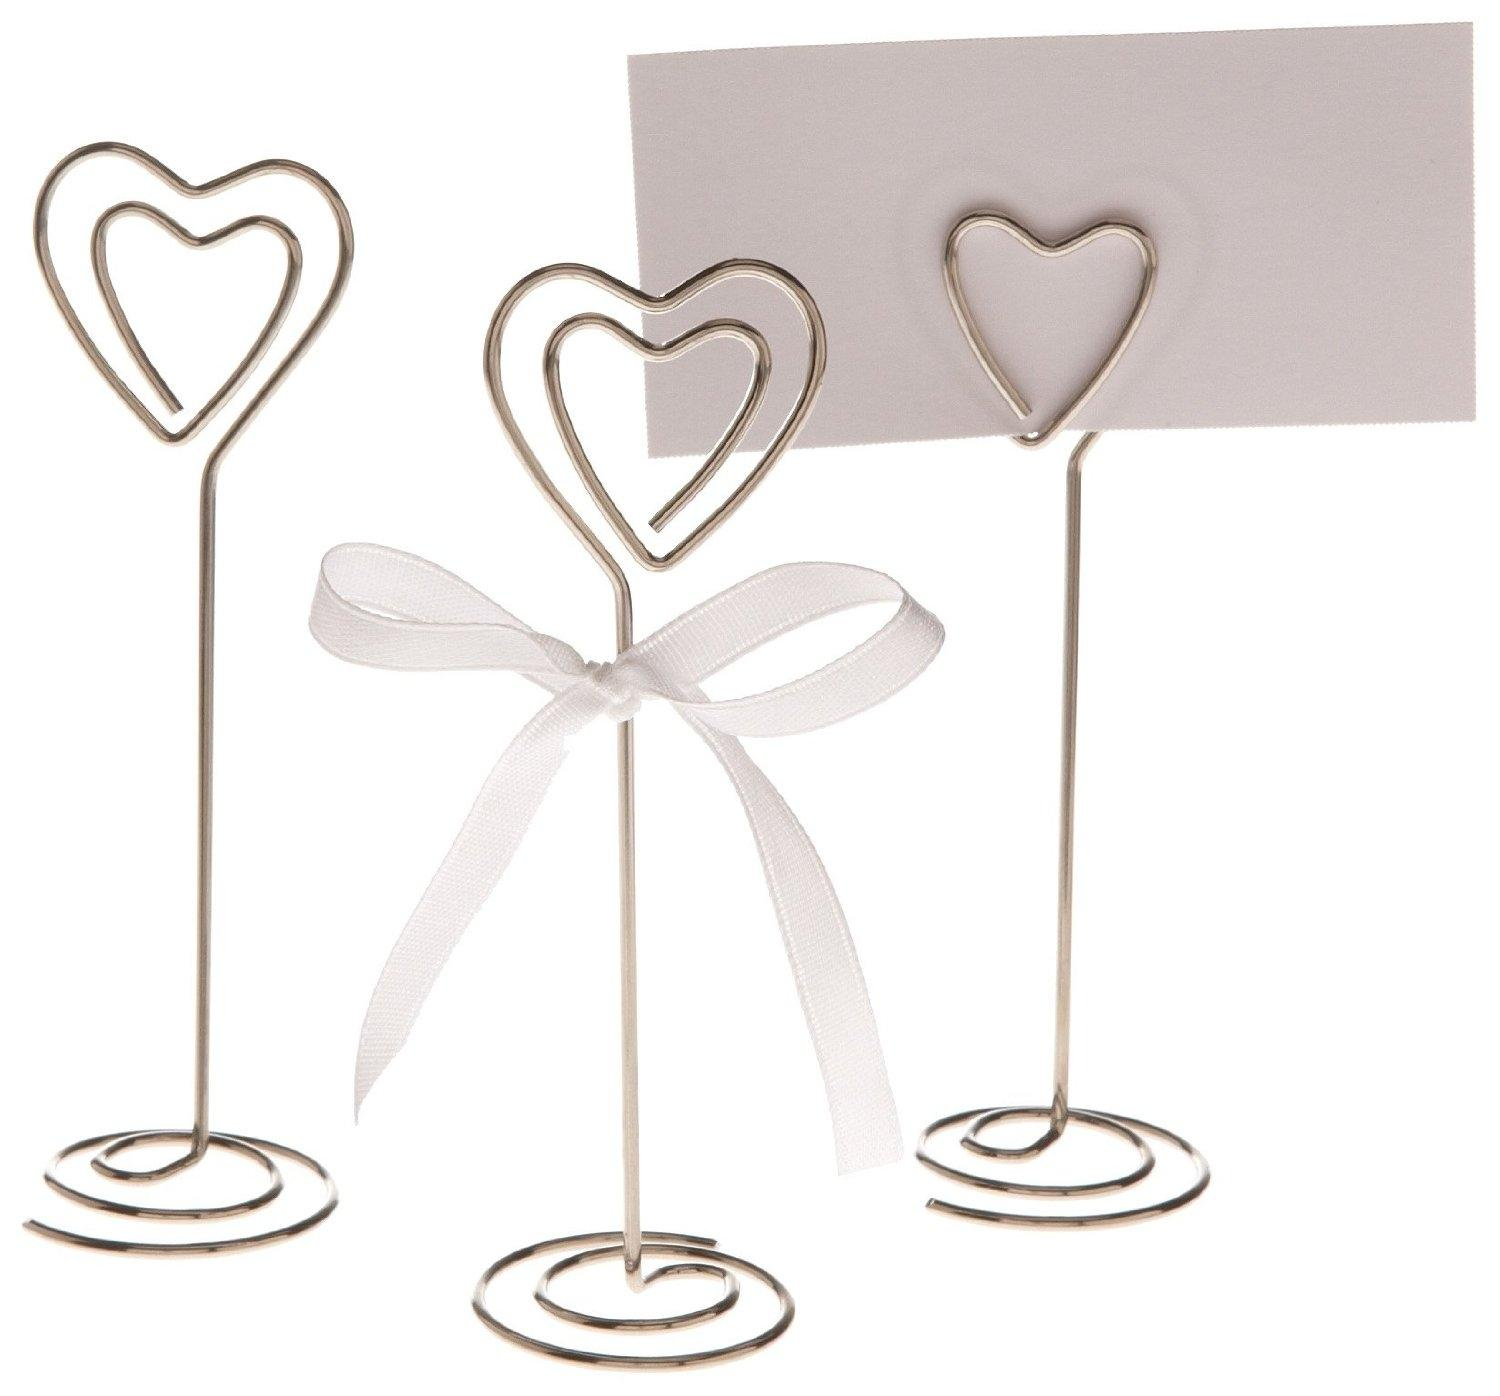 10x heart shape table number holder place card holders clips stands